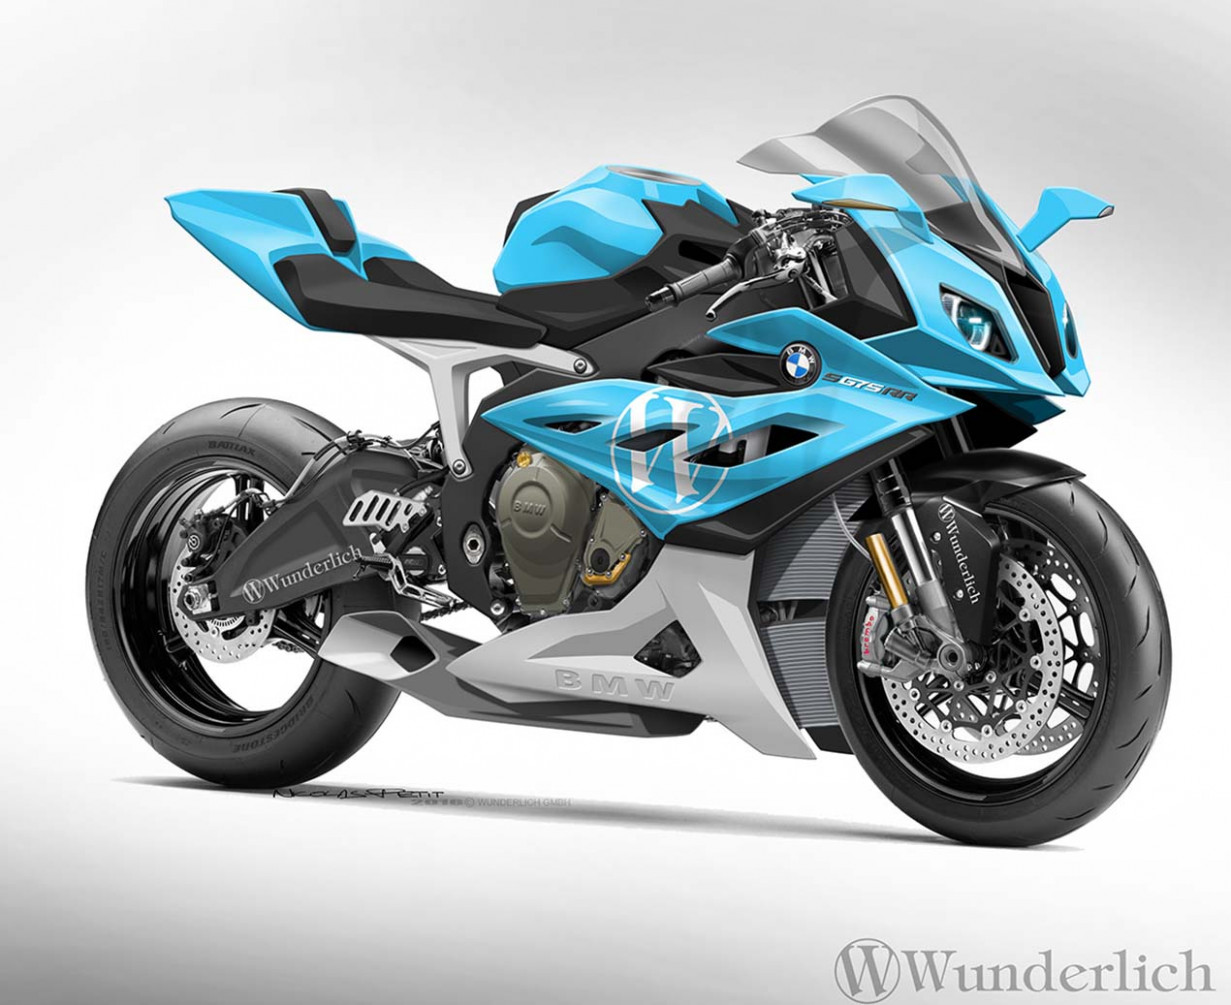 Redesign and Review BMW S1000Rr 2022 Price